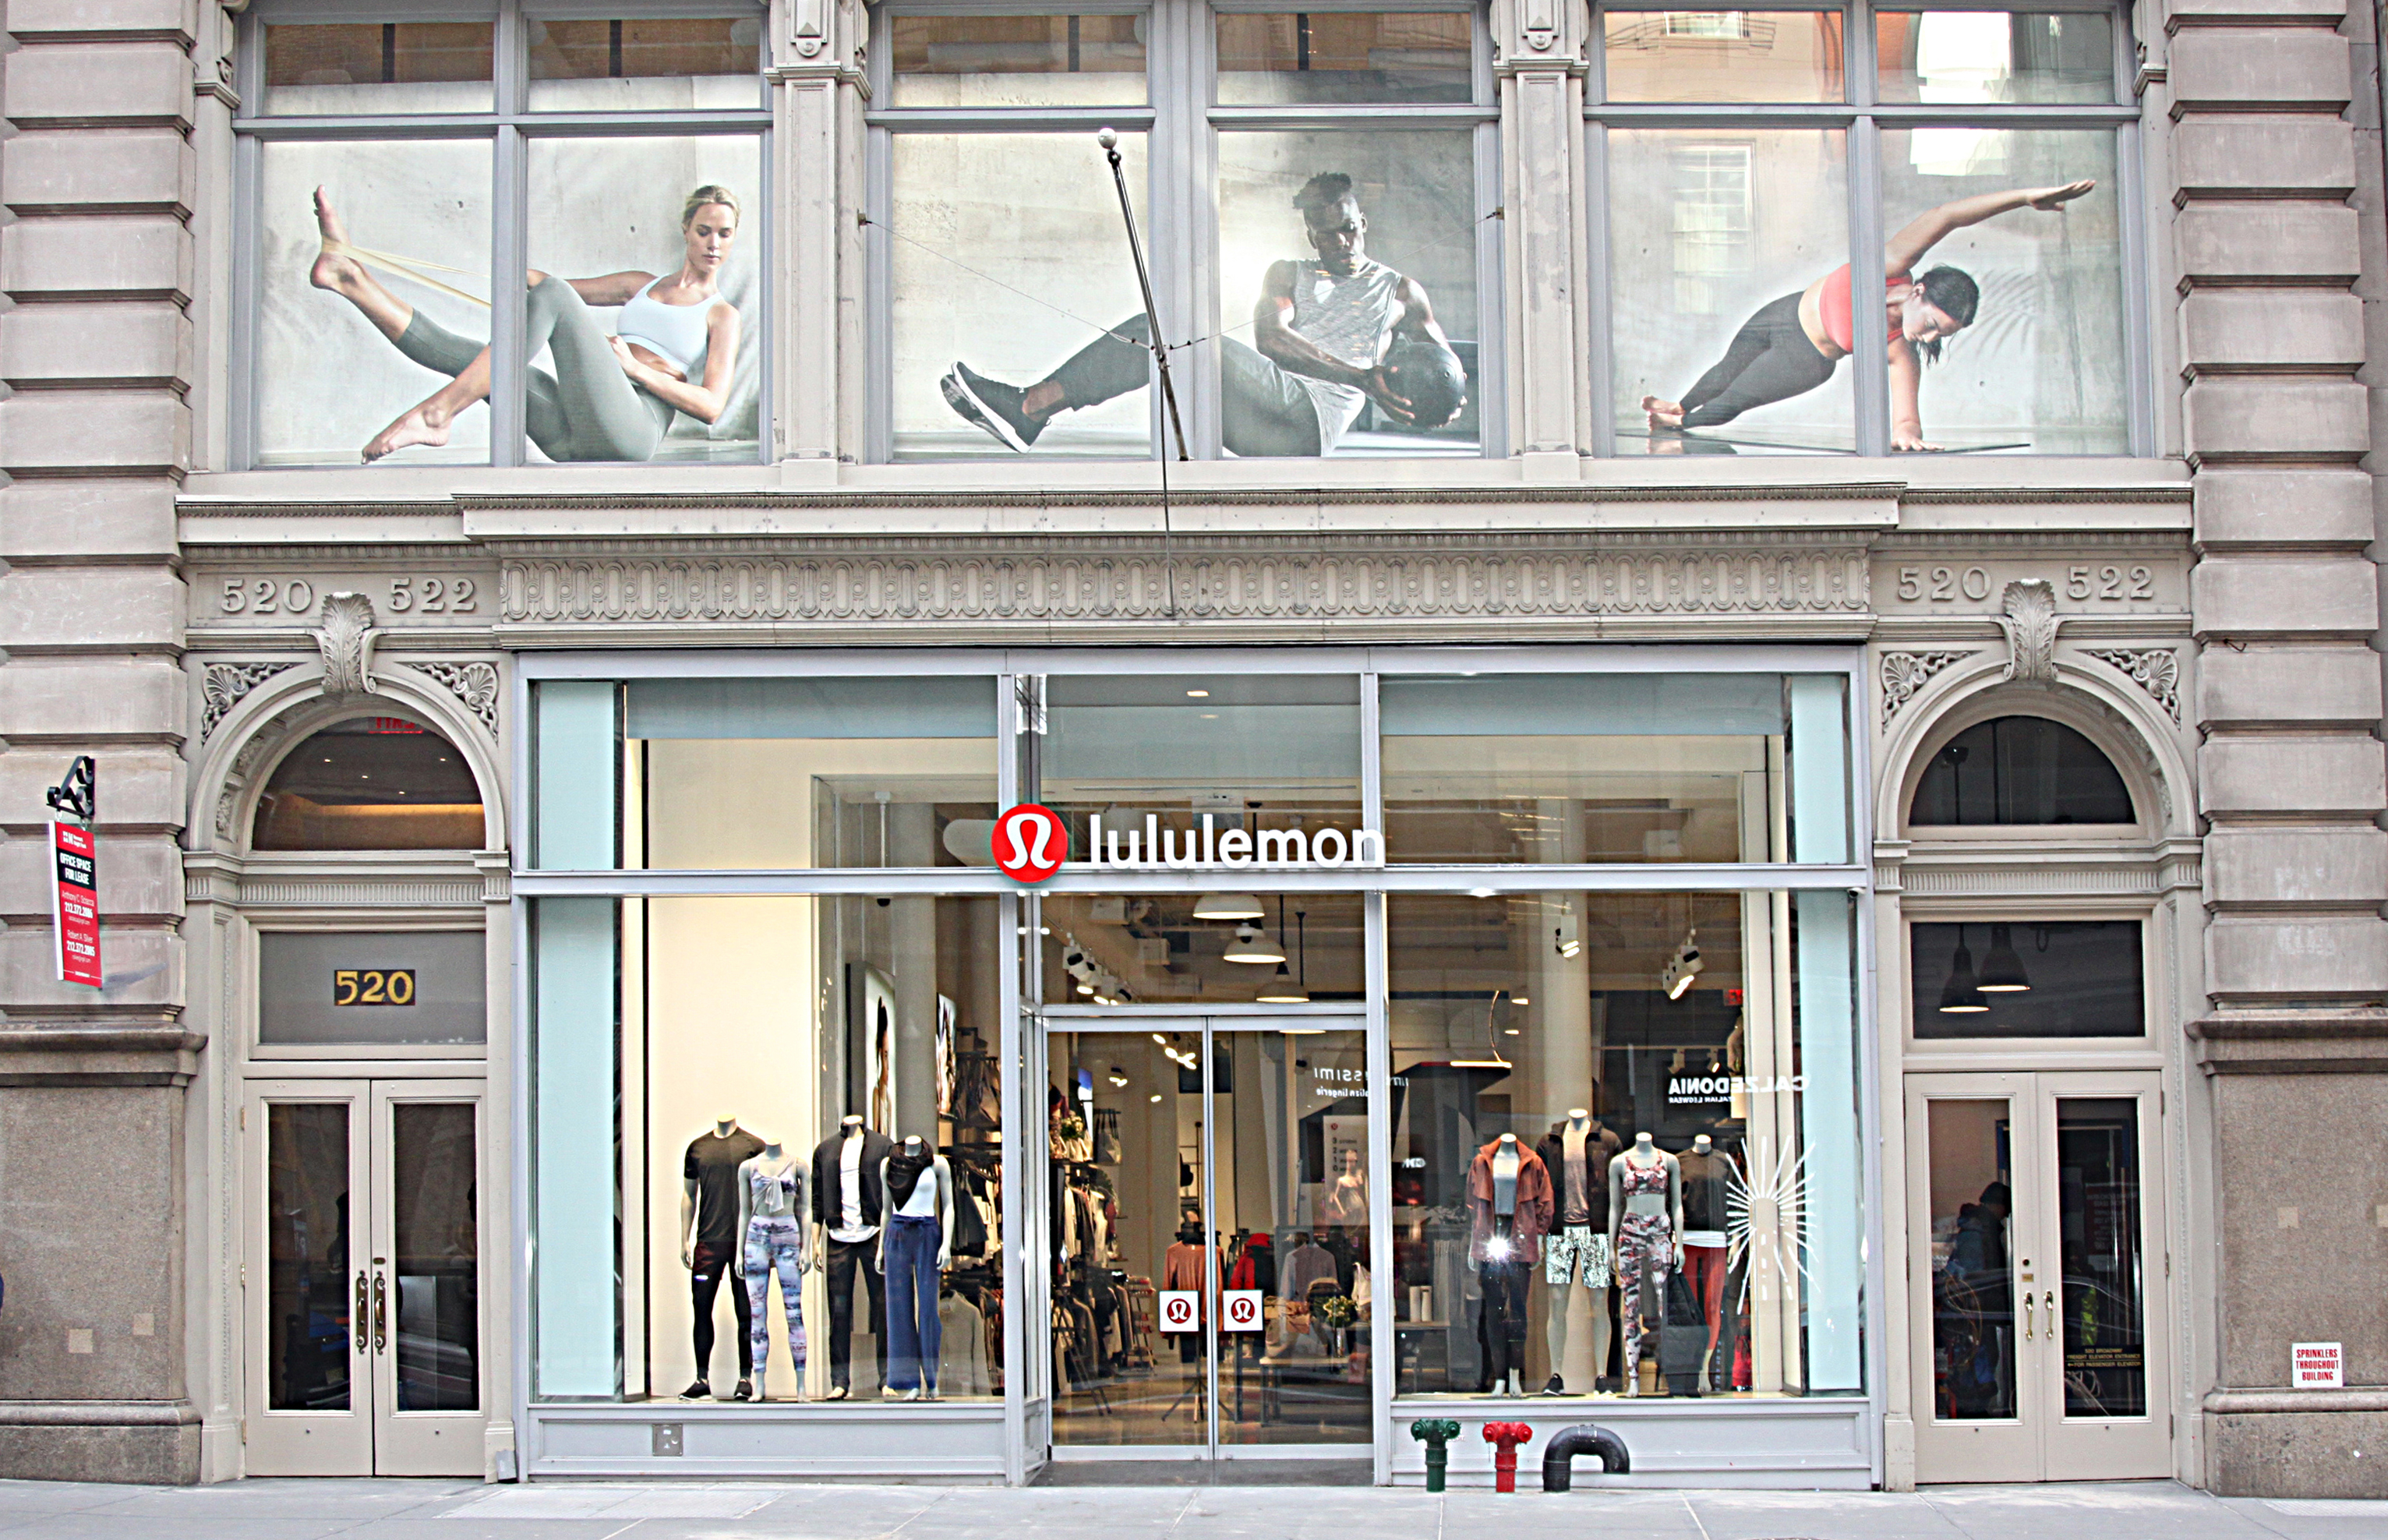 683f46c7e6c4f 22 Feb Lululemon Opens A Yoga Studio in NYC. Posted at 18 55h in Store  Opening ...